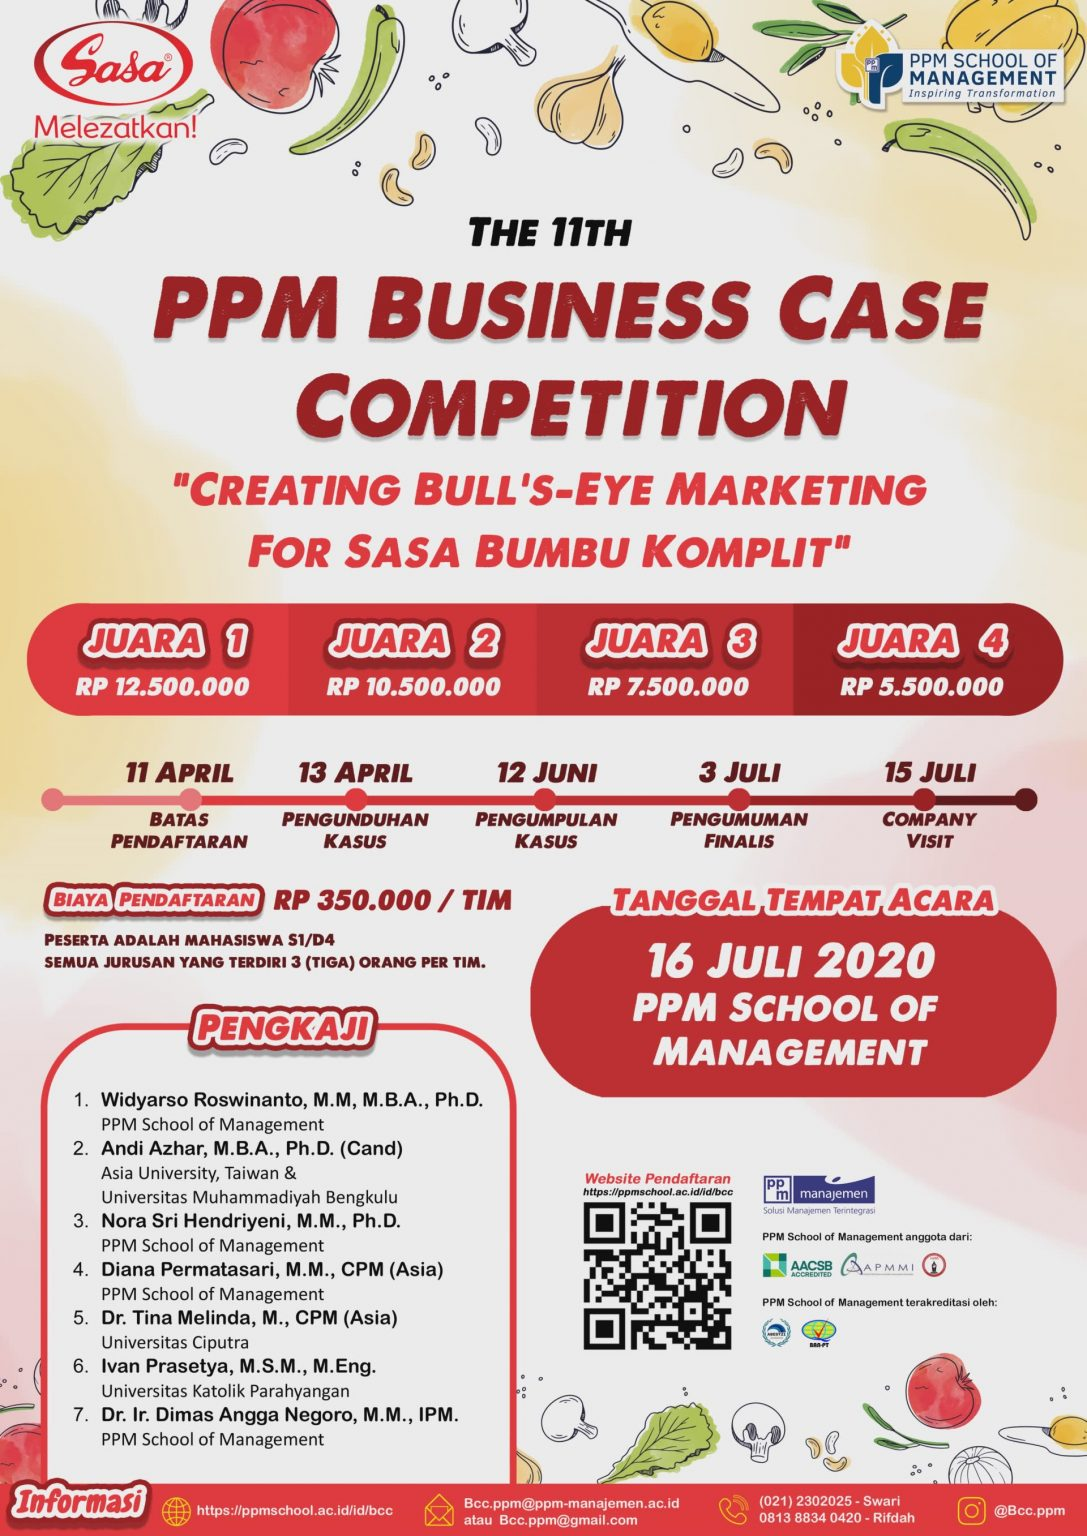 The 11th PPM Business Case Competition